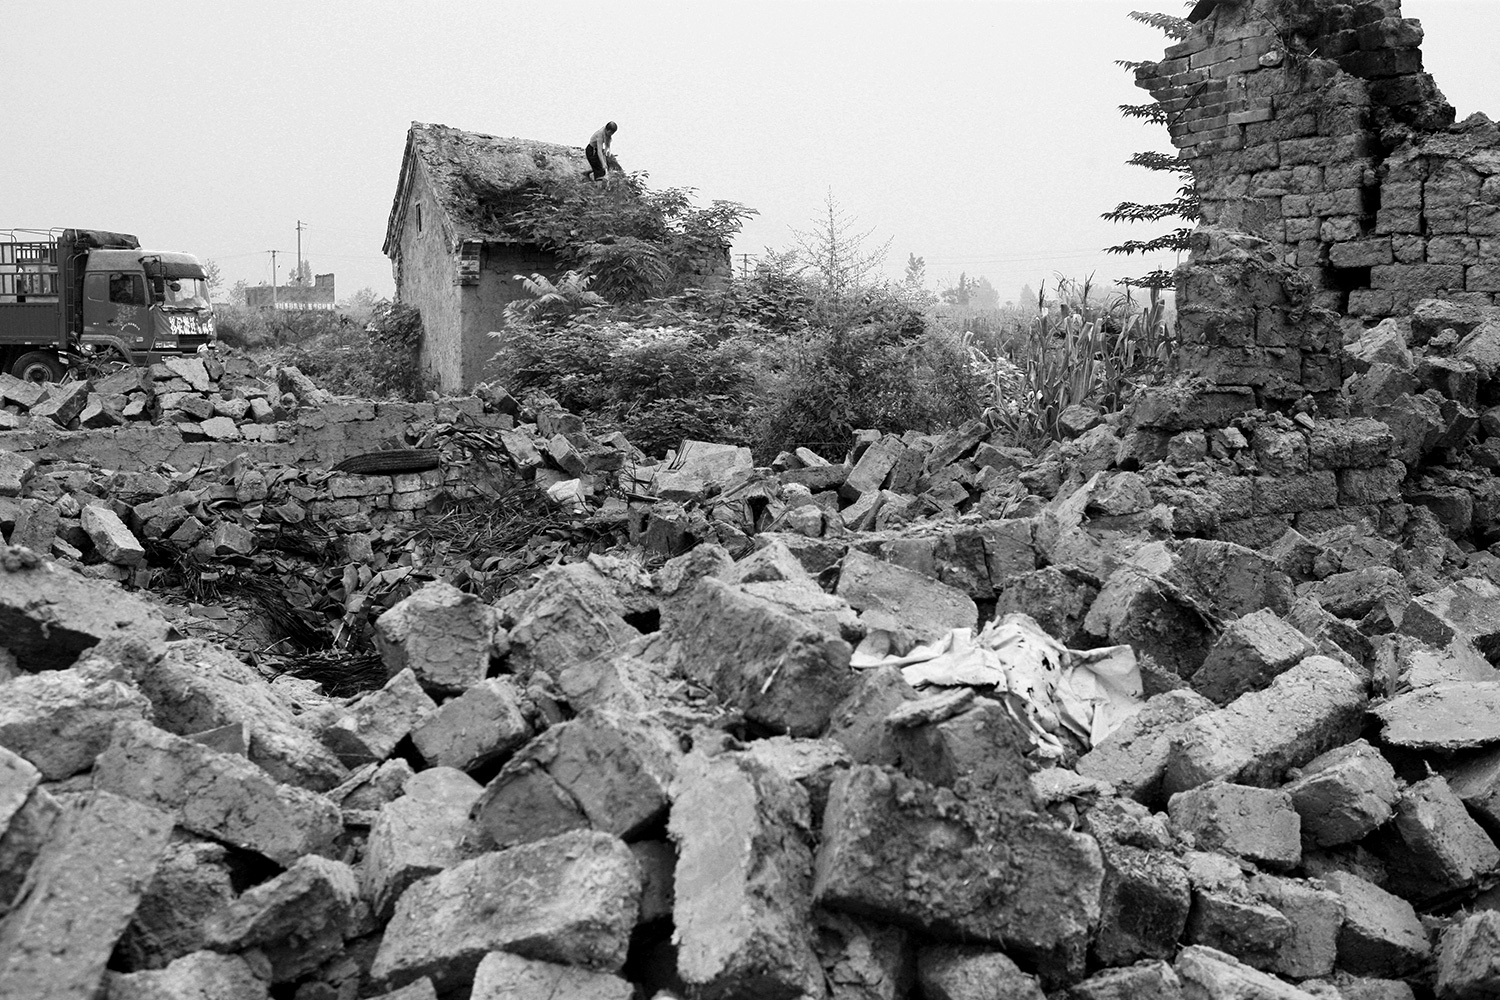 A farmer demolishes his own house in Jinhe. Roof tiles that could be salvaged were loaded onto a truck and taken away.